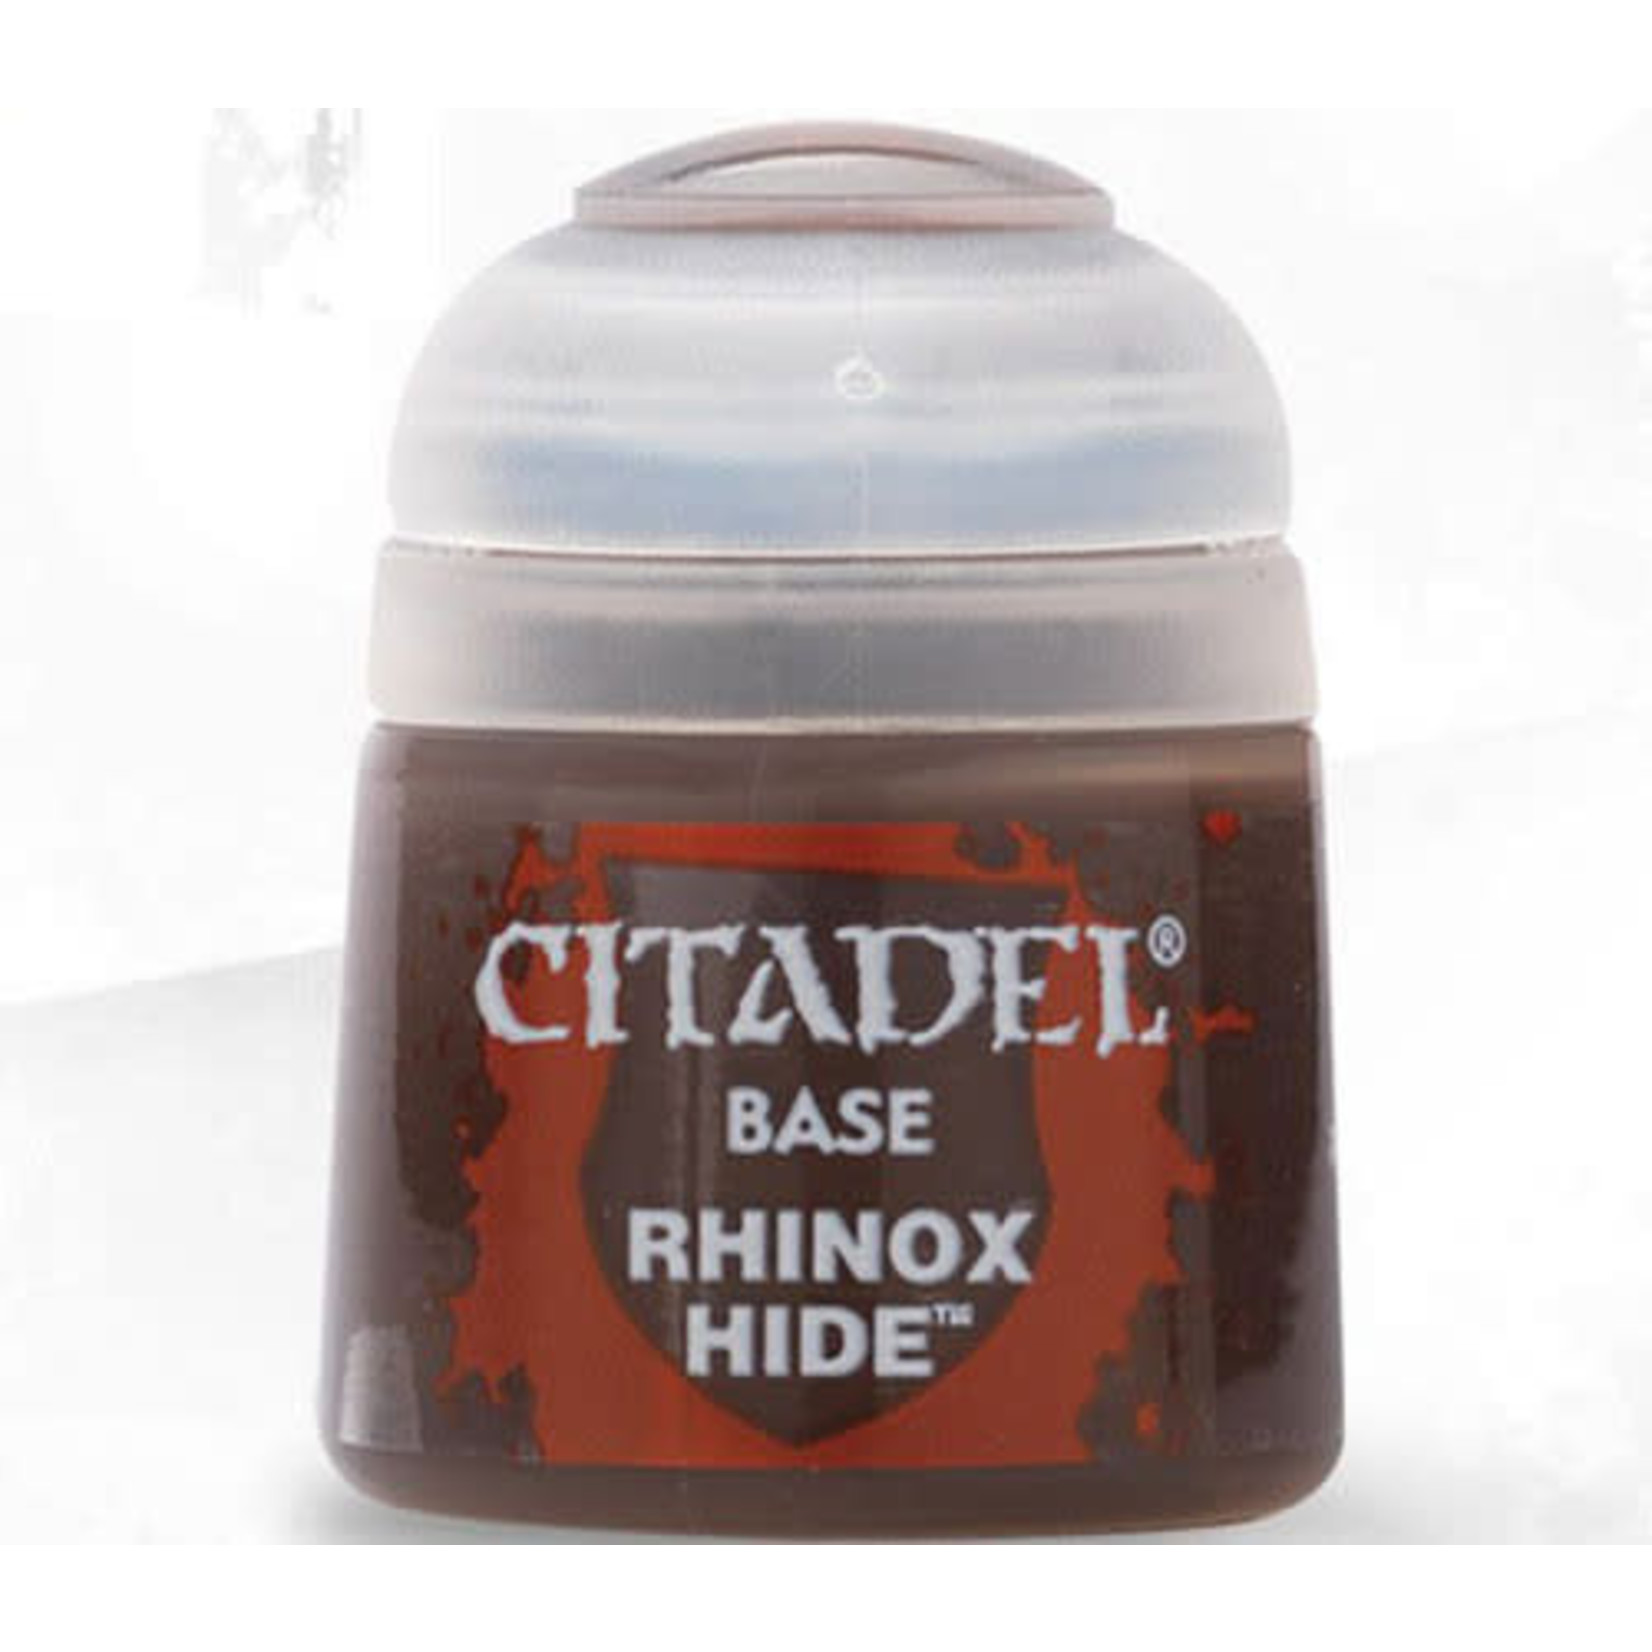 Citadel Citadel Paint - Base: Rhinox Hide